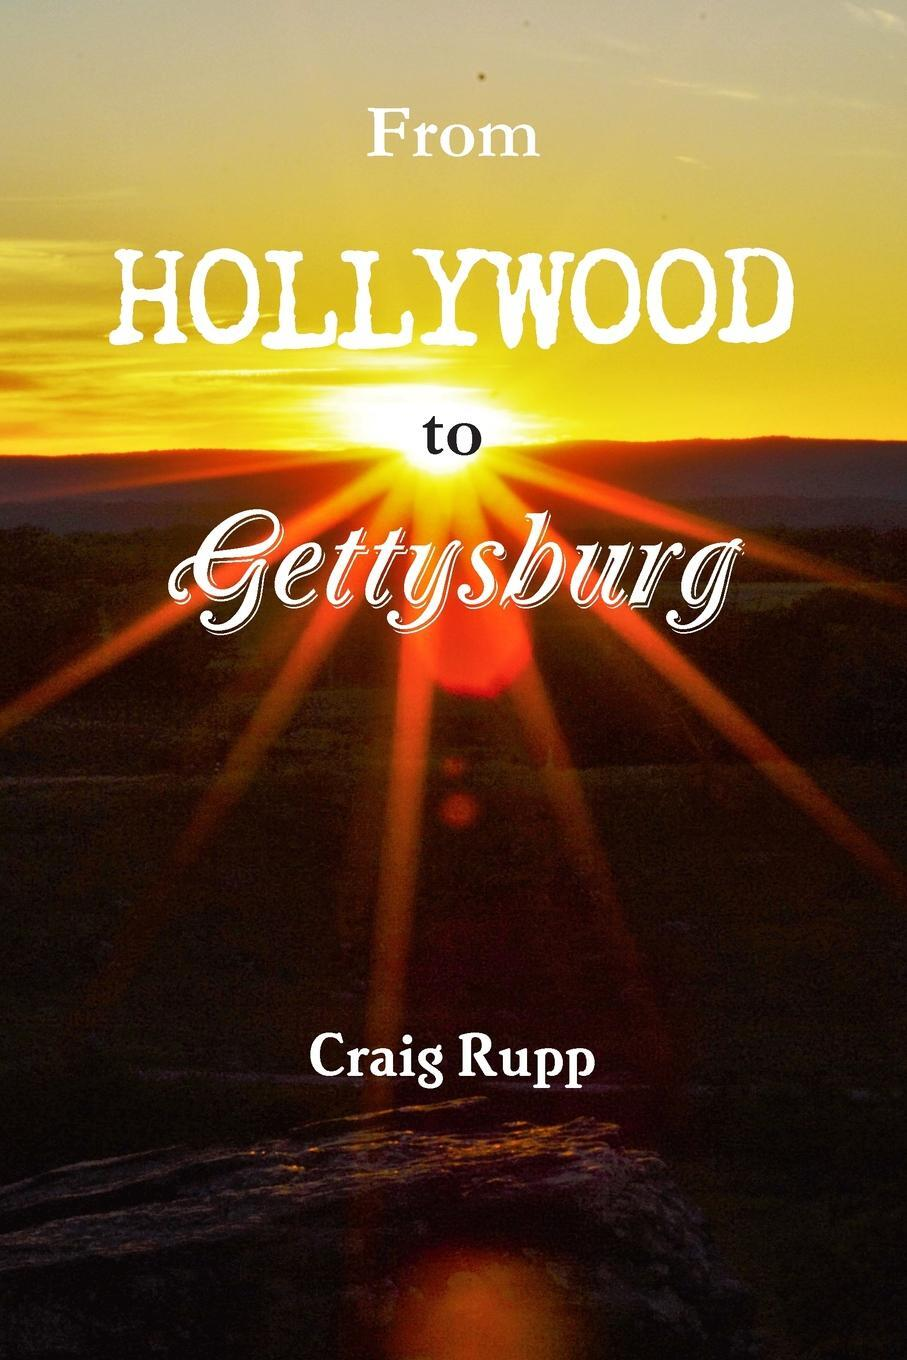 From Hollywood to Gettysburg